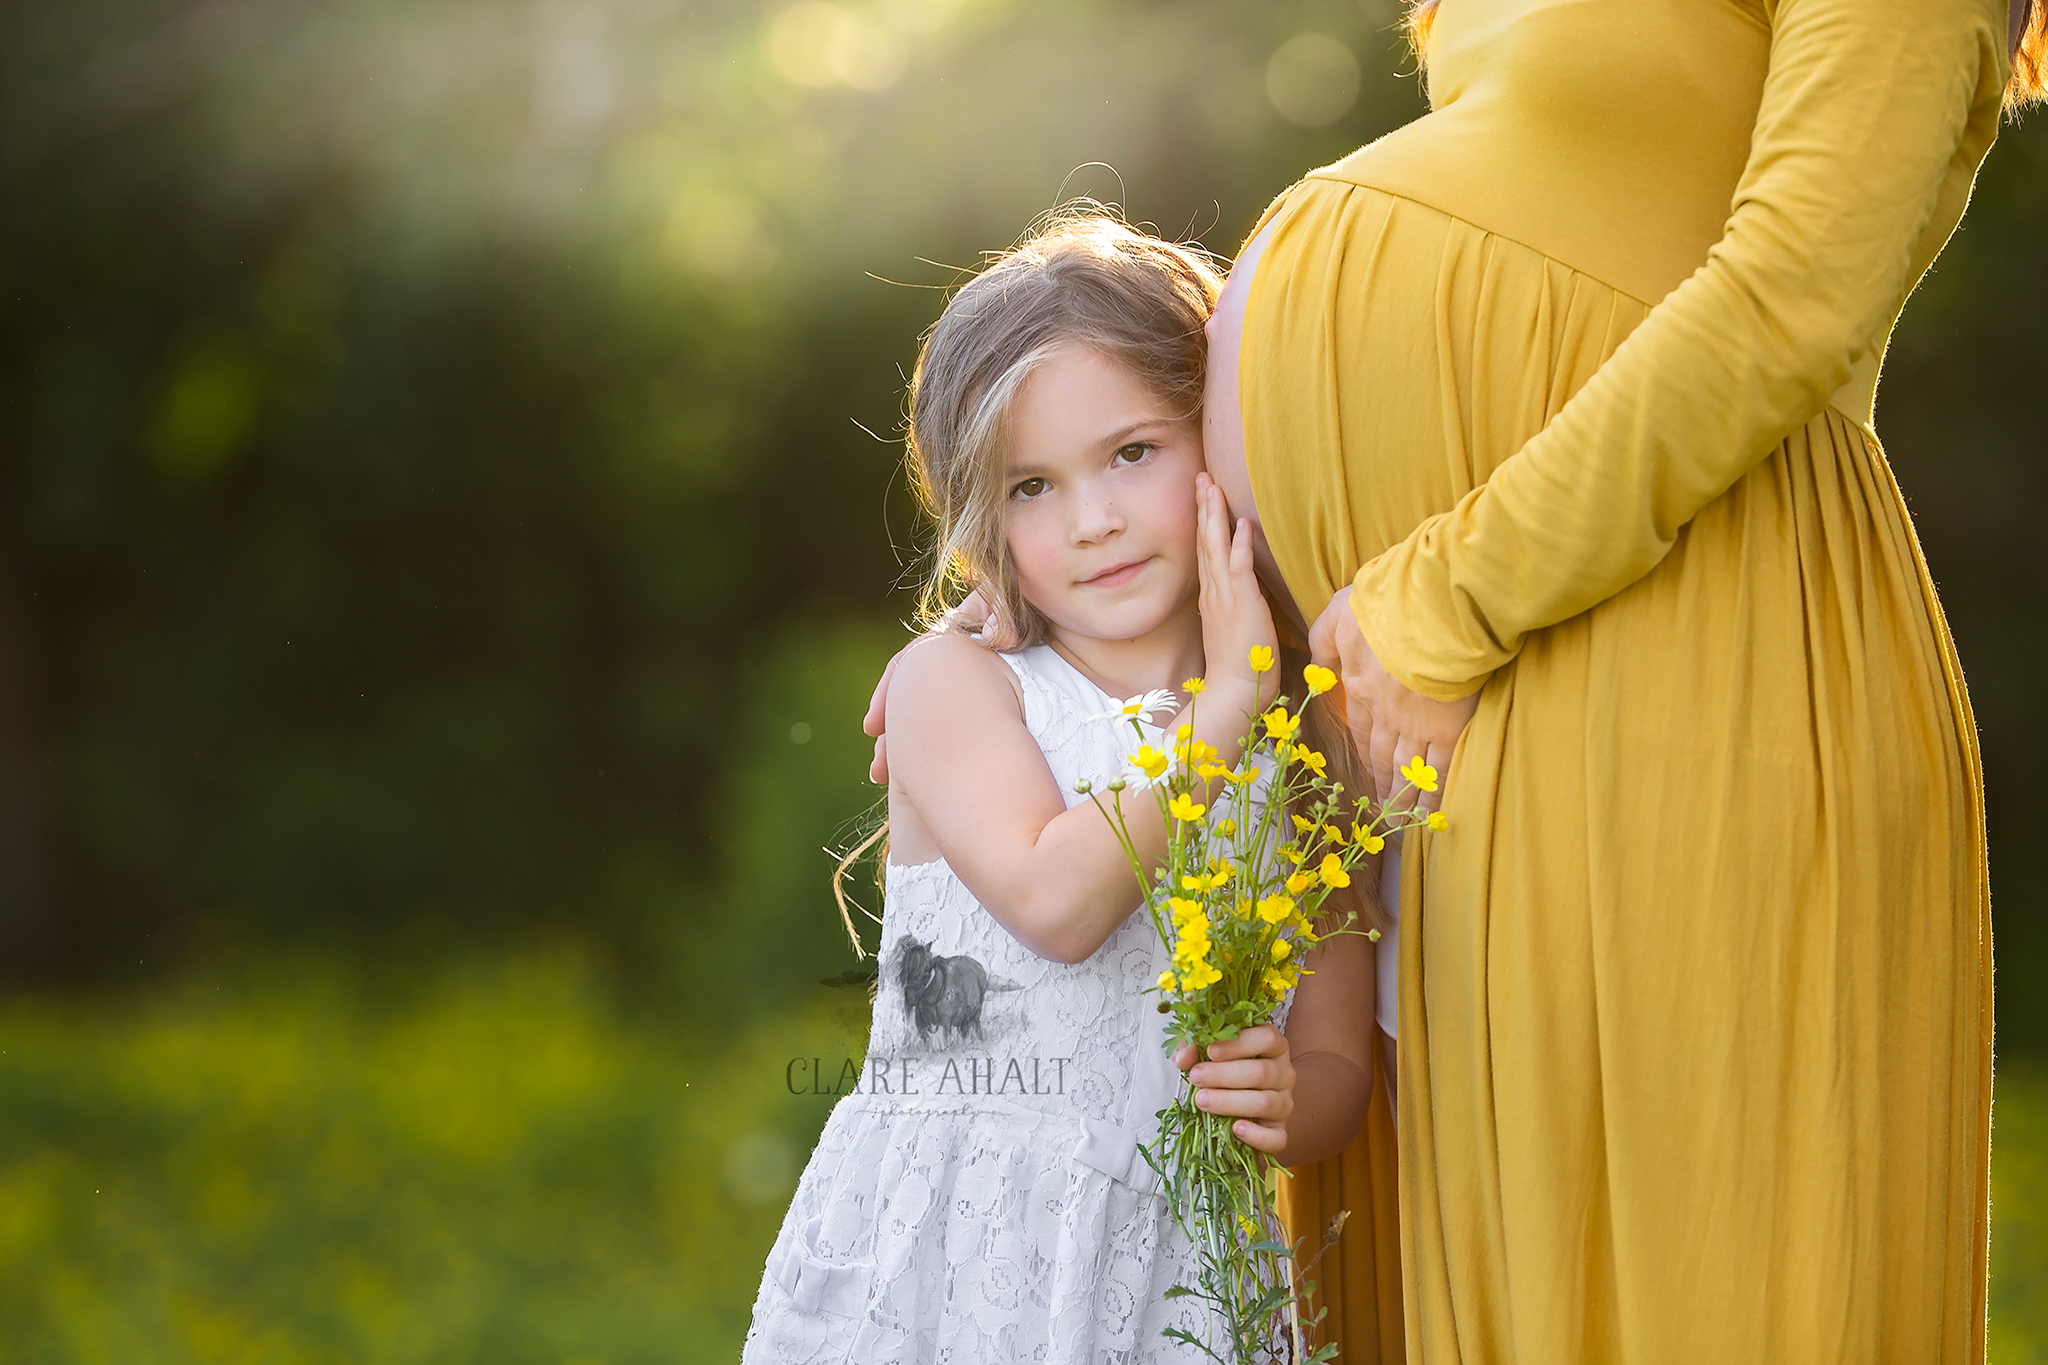 Maternity photograph of a mother and her child taken by Clare Ahalt Photography, a fine art portrait photographer located in Frederick MD serving Maryland, Northern Virginia and Washington DC